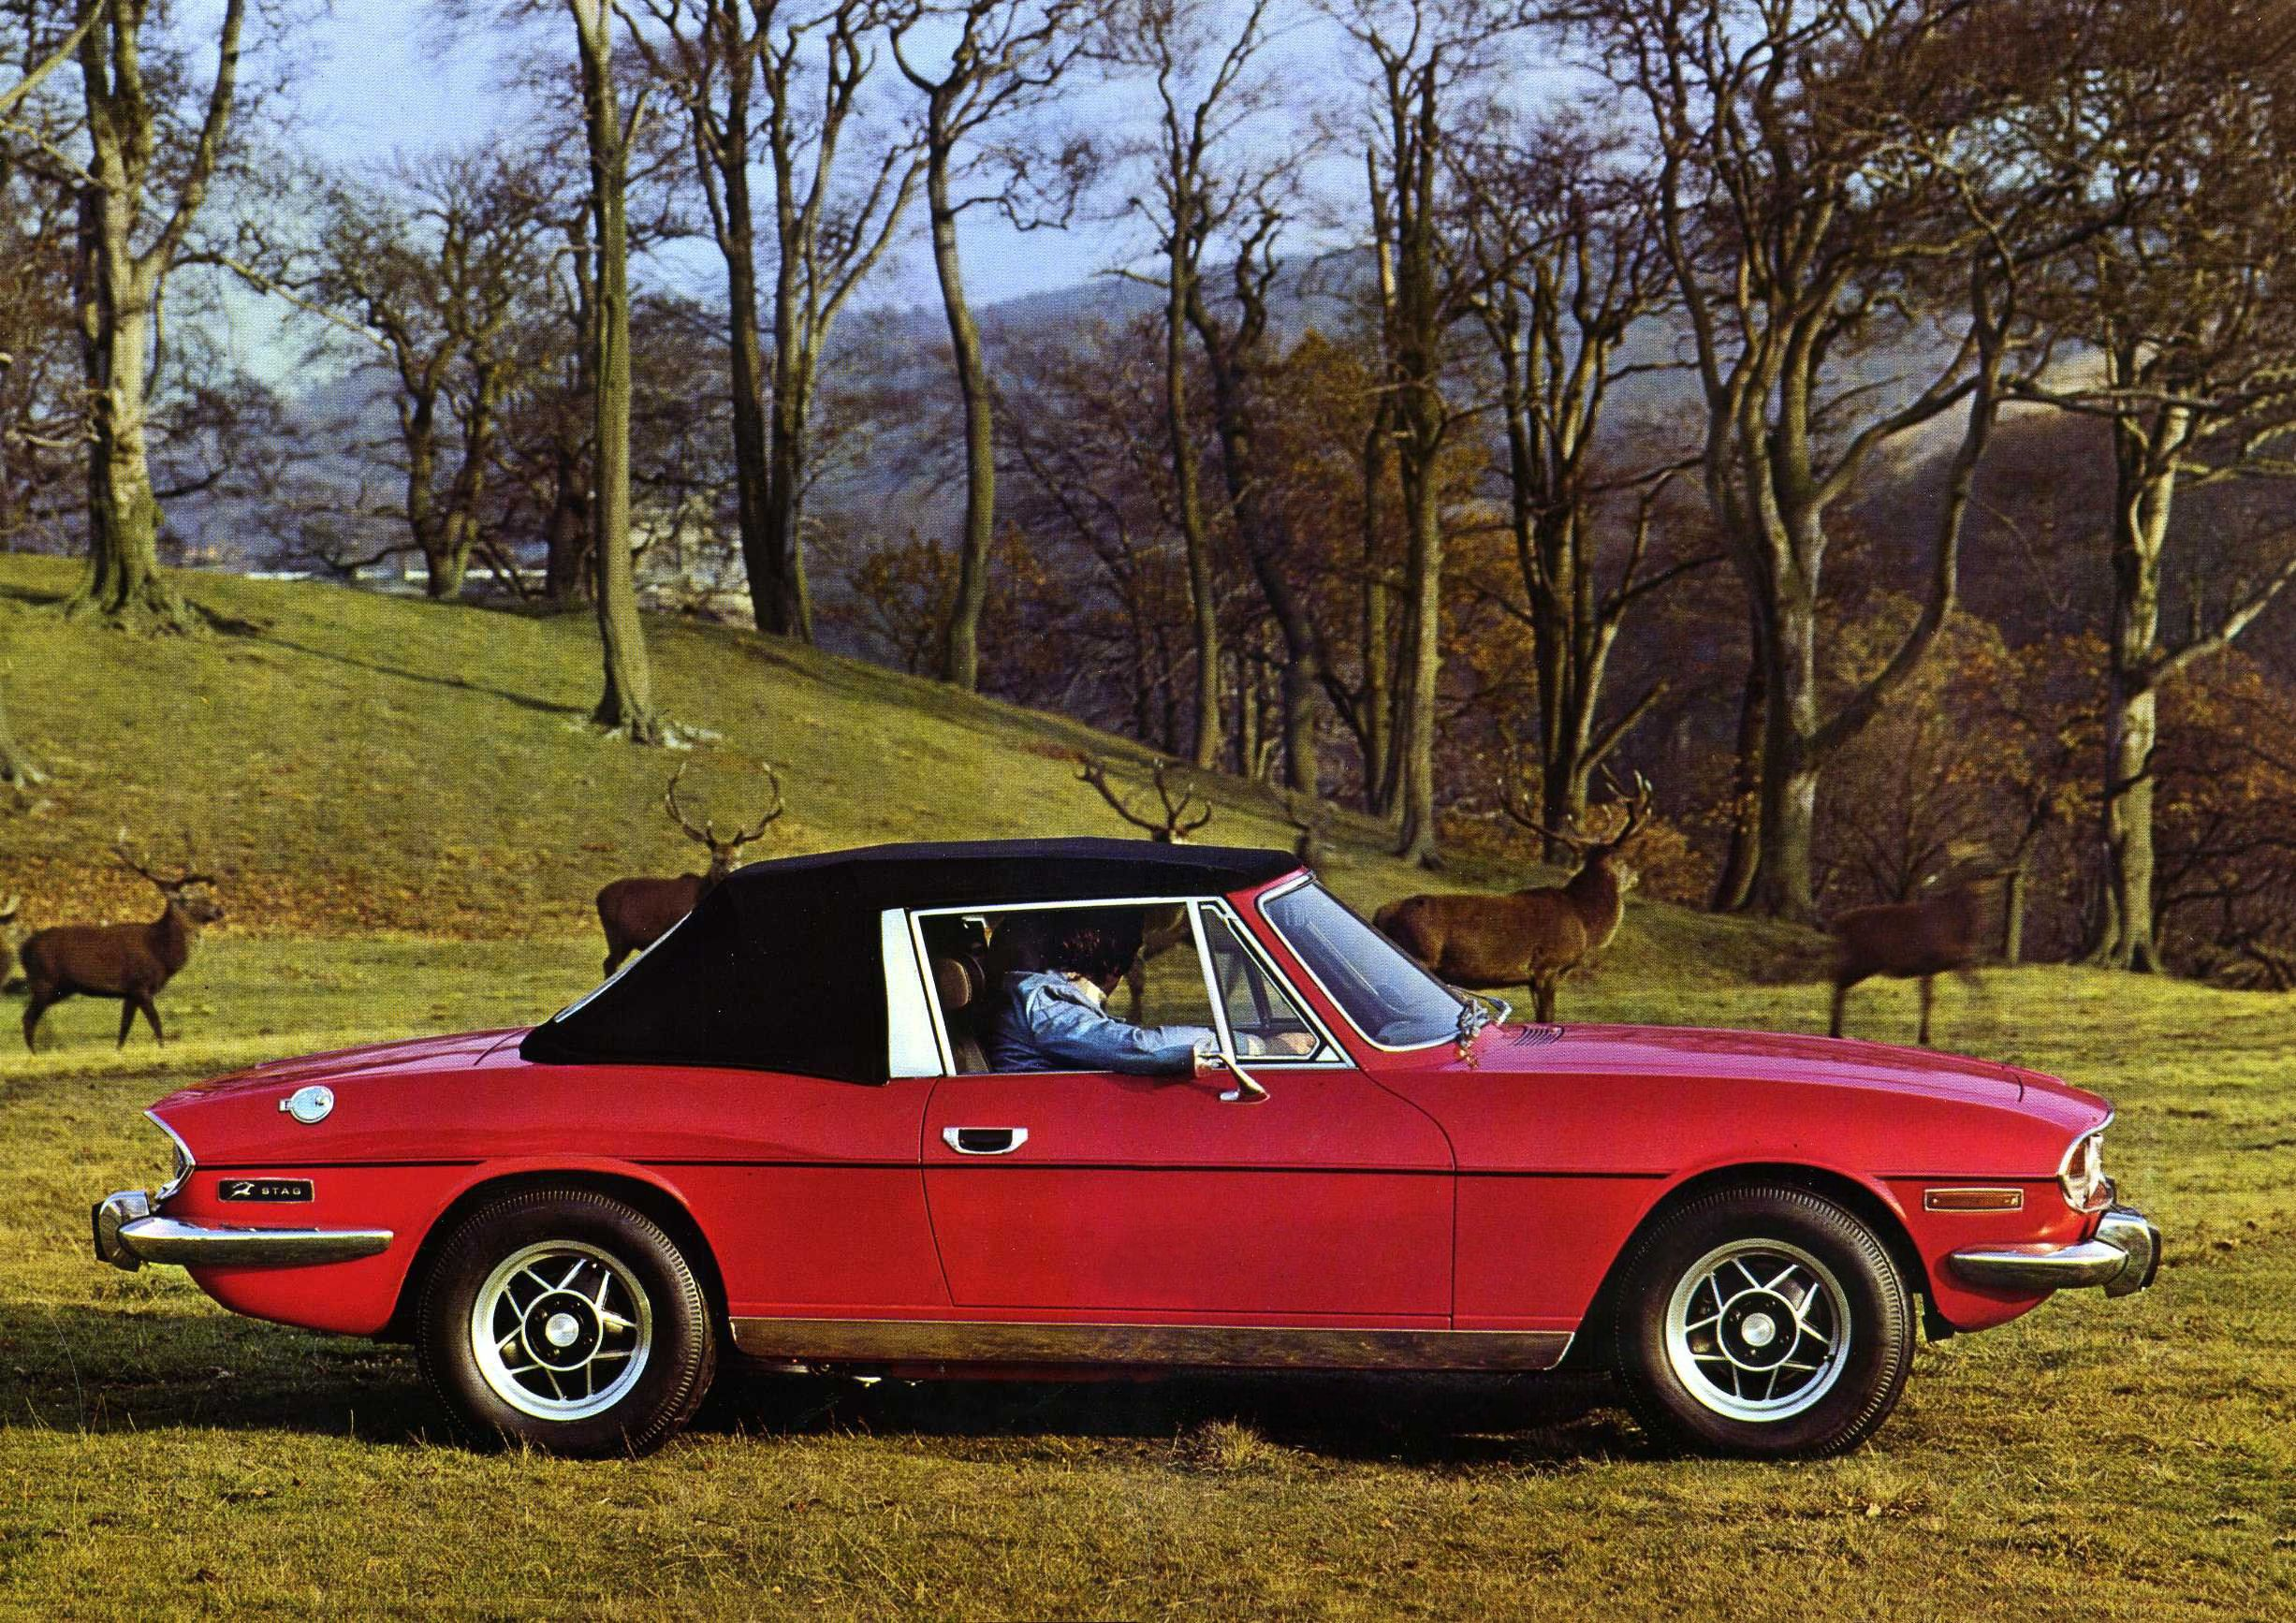 1970 77 triumph stag brochure owners manual for ford sport trac 2003 owners manual for cars free